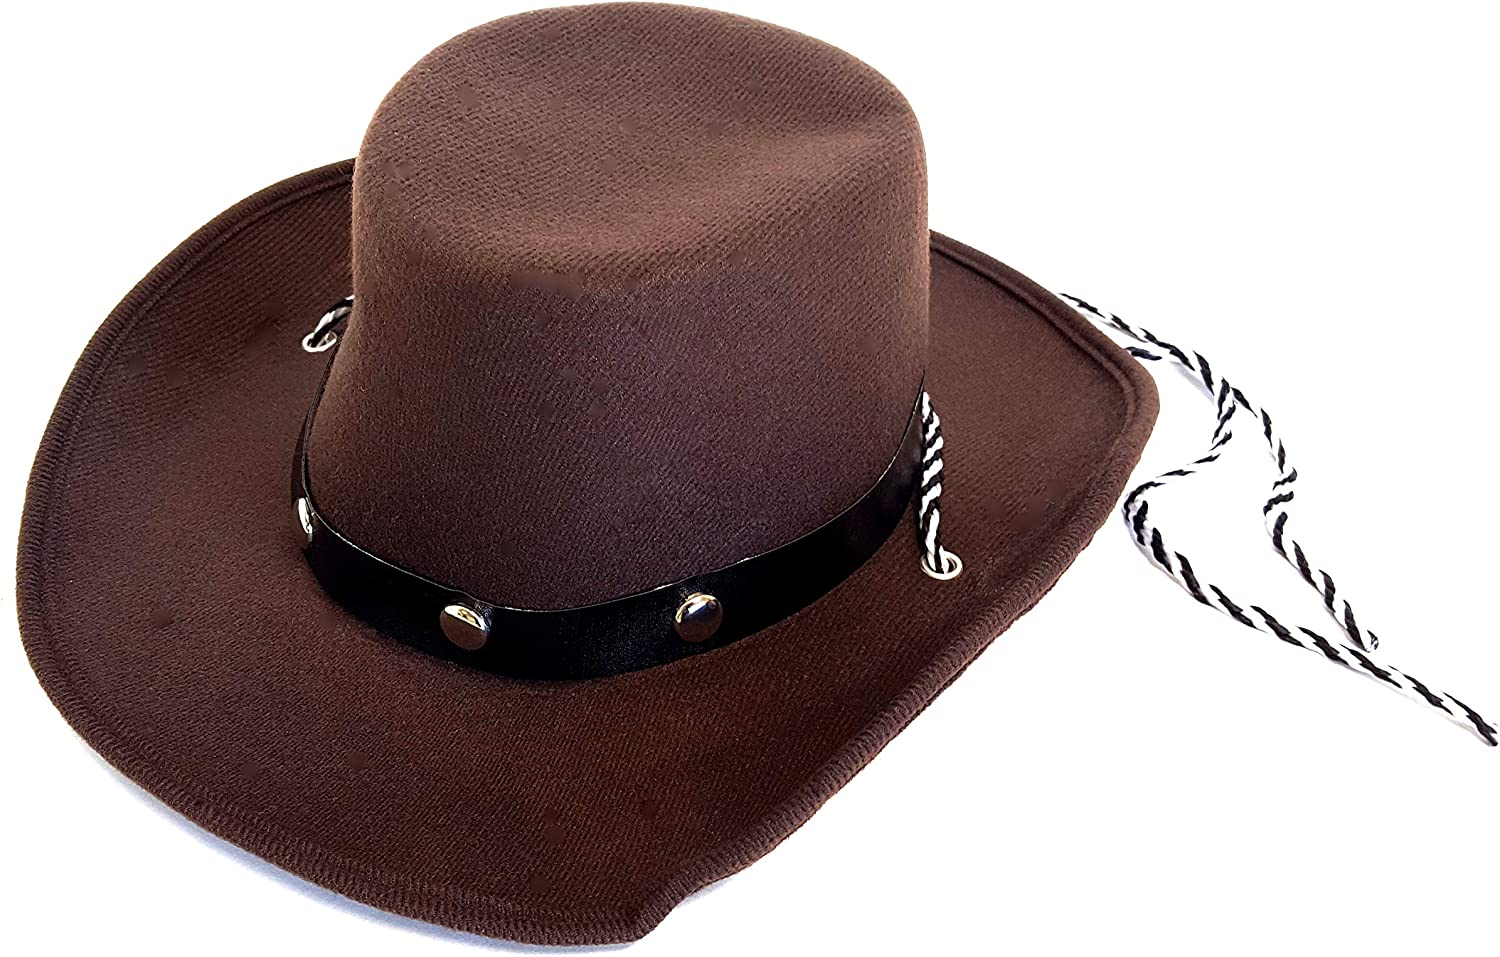 Toddler Western Rodeo Cowboy Hat, by Dondor Brown